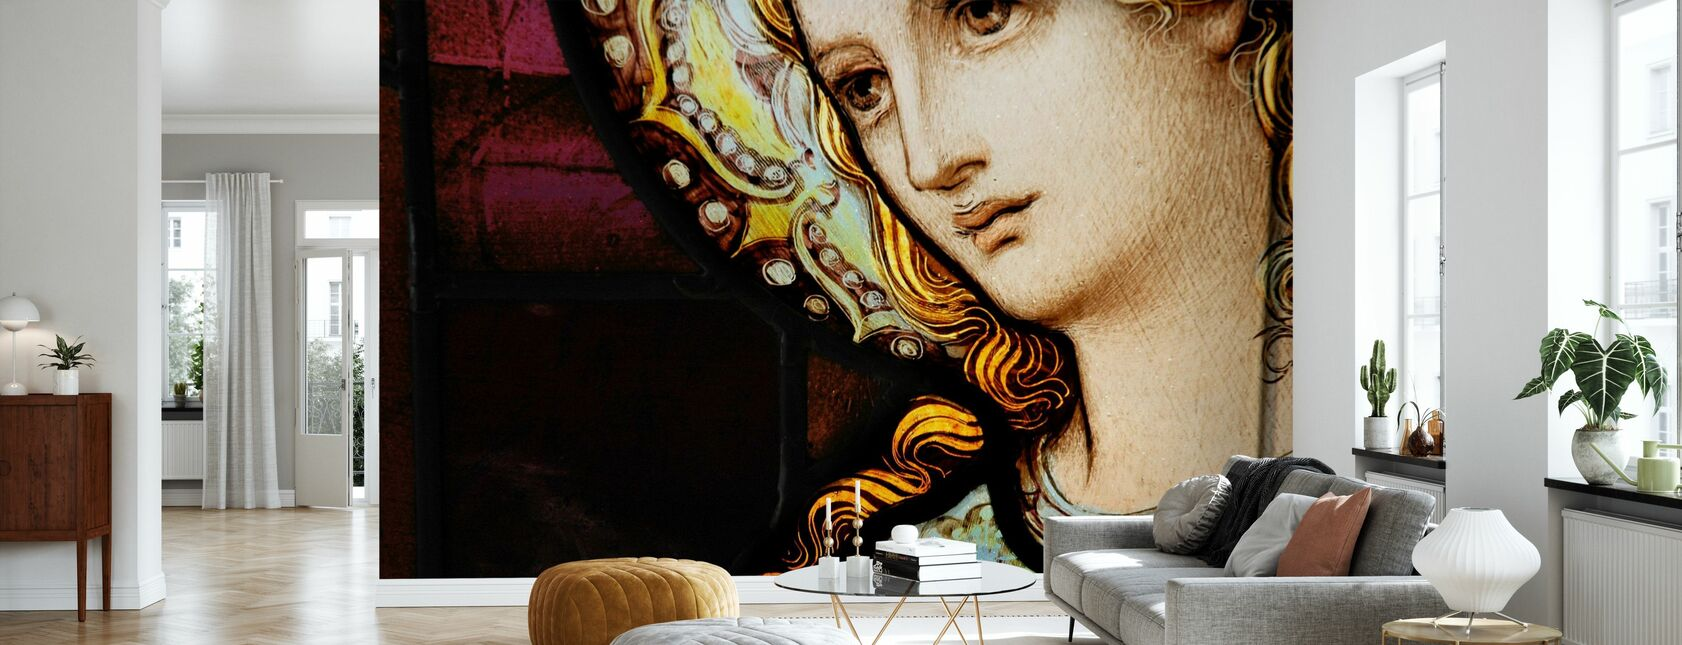 Mother Mary - Wallpaper - Living Room